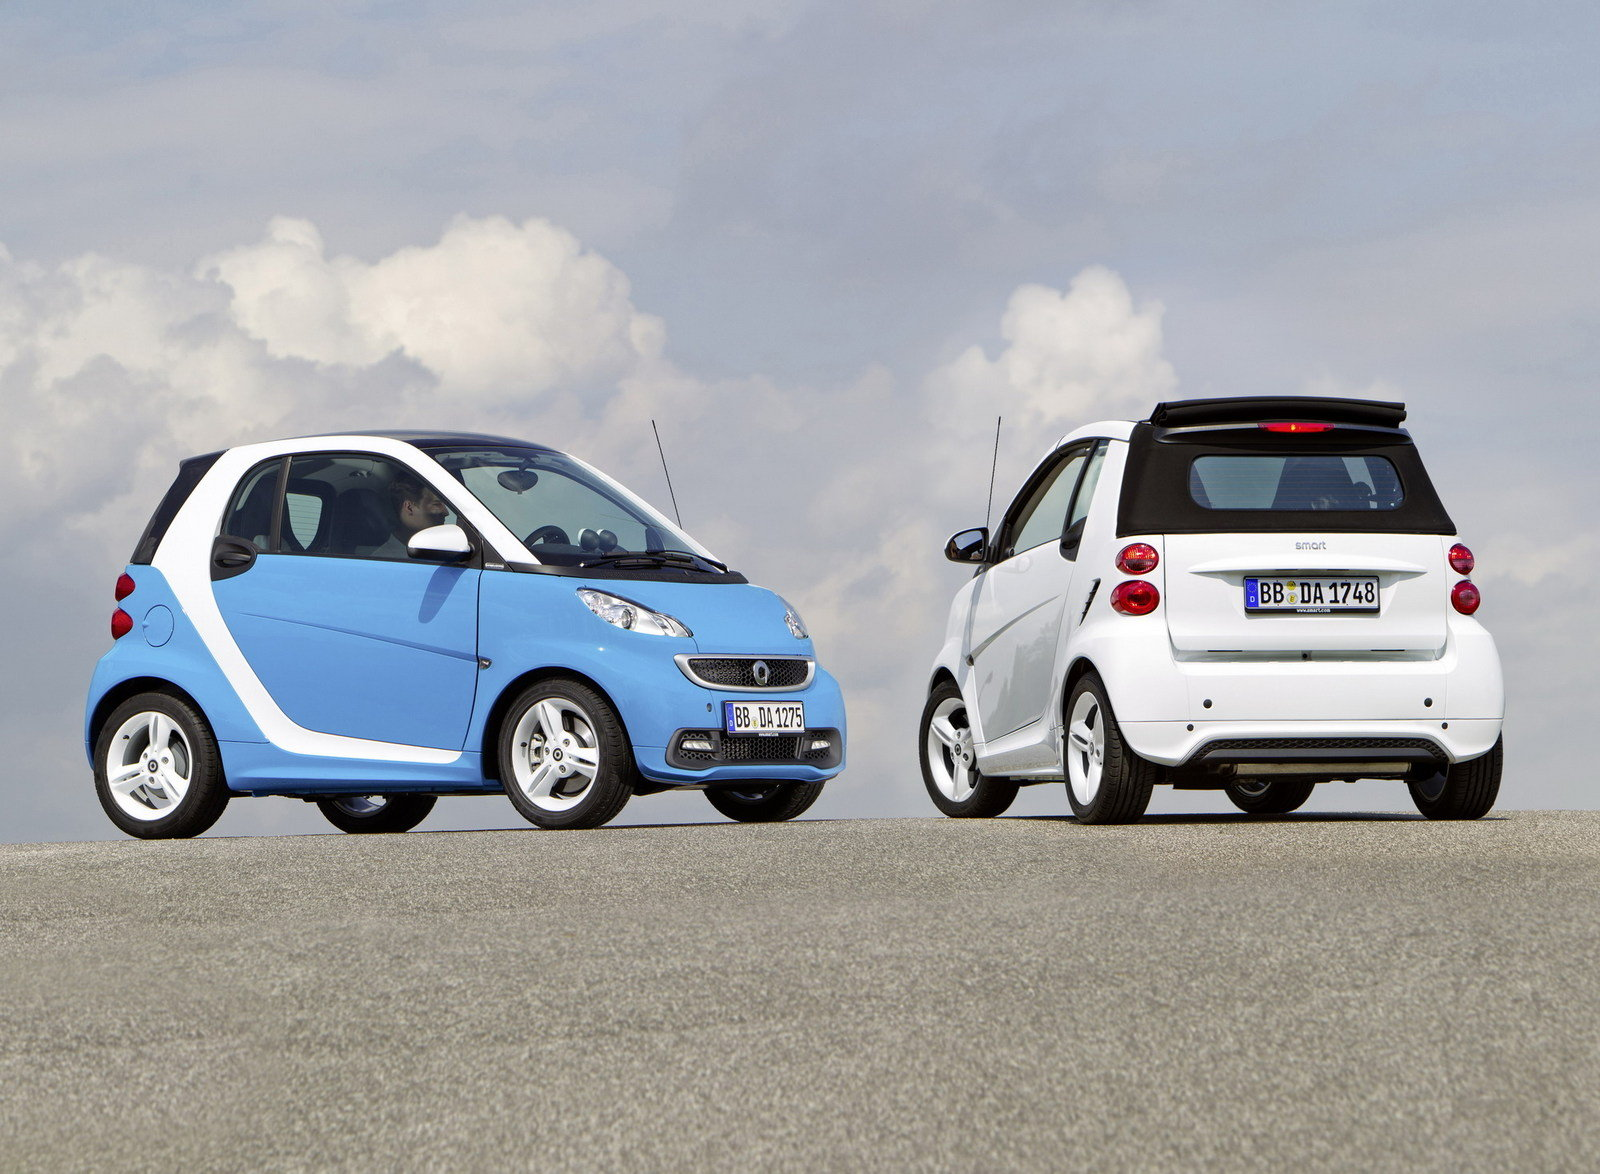 http://pictures.topspeed.com/IMG/crop/201206/smart-fortwo-iceshin-23_1600x0w.jpg